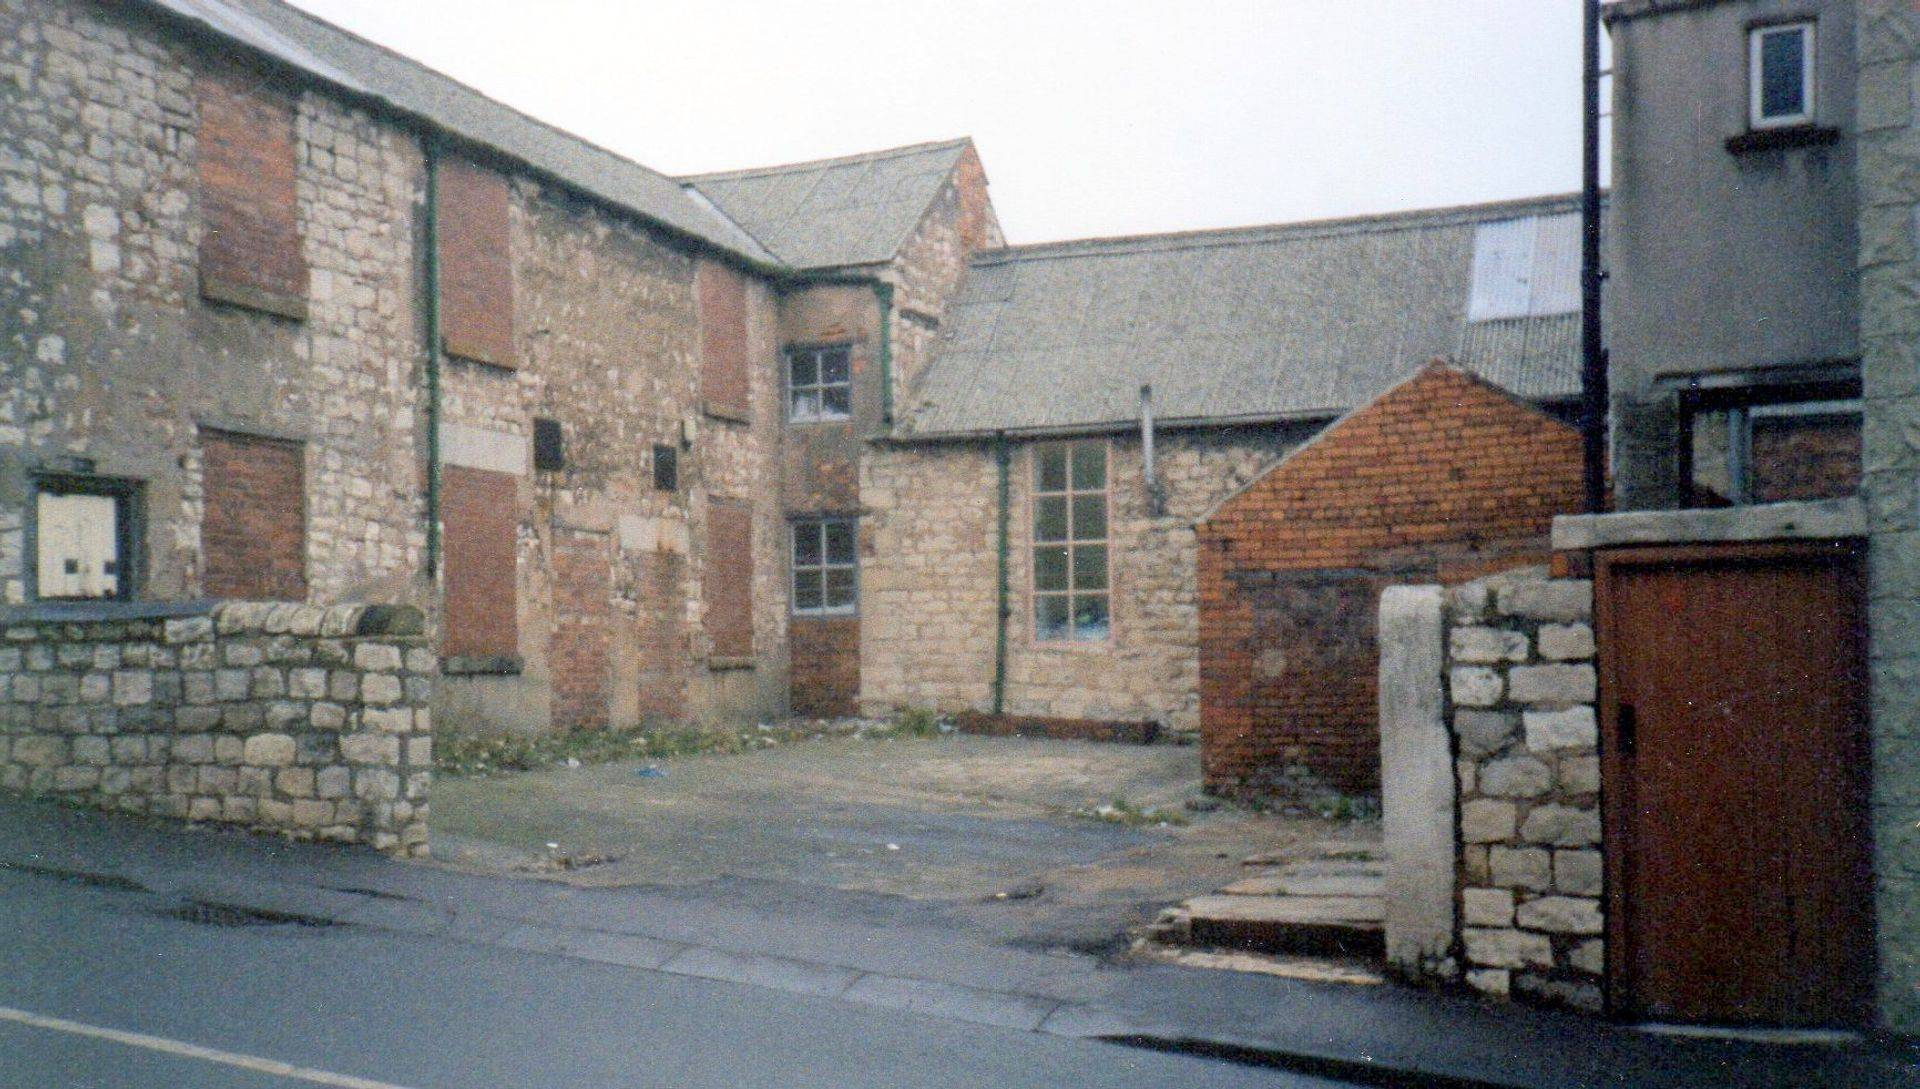 Drabbles Yard Old Road Conisbrough